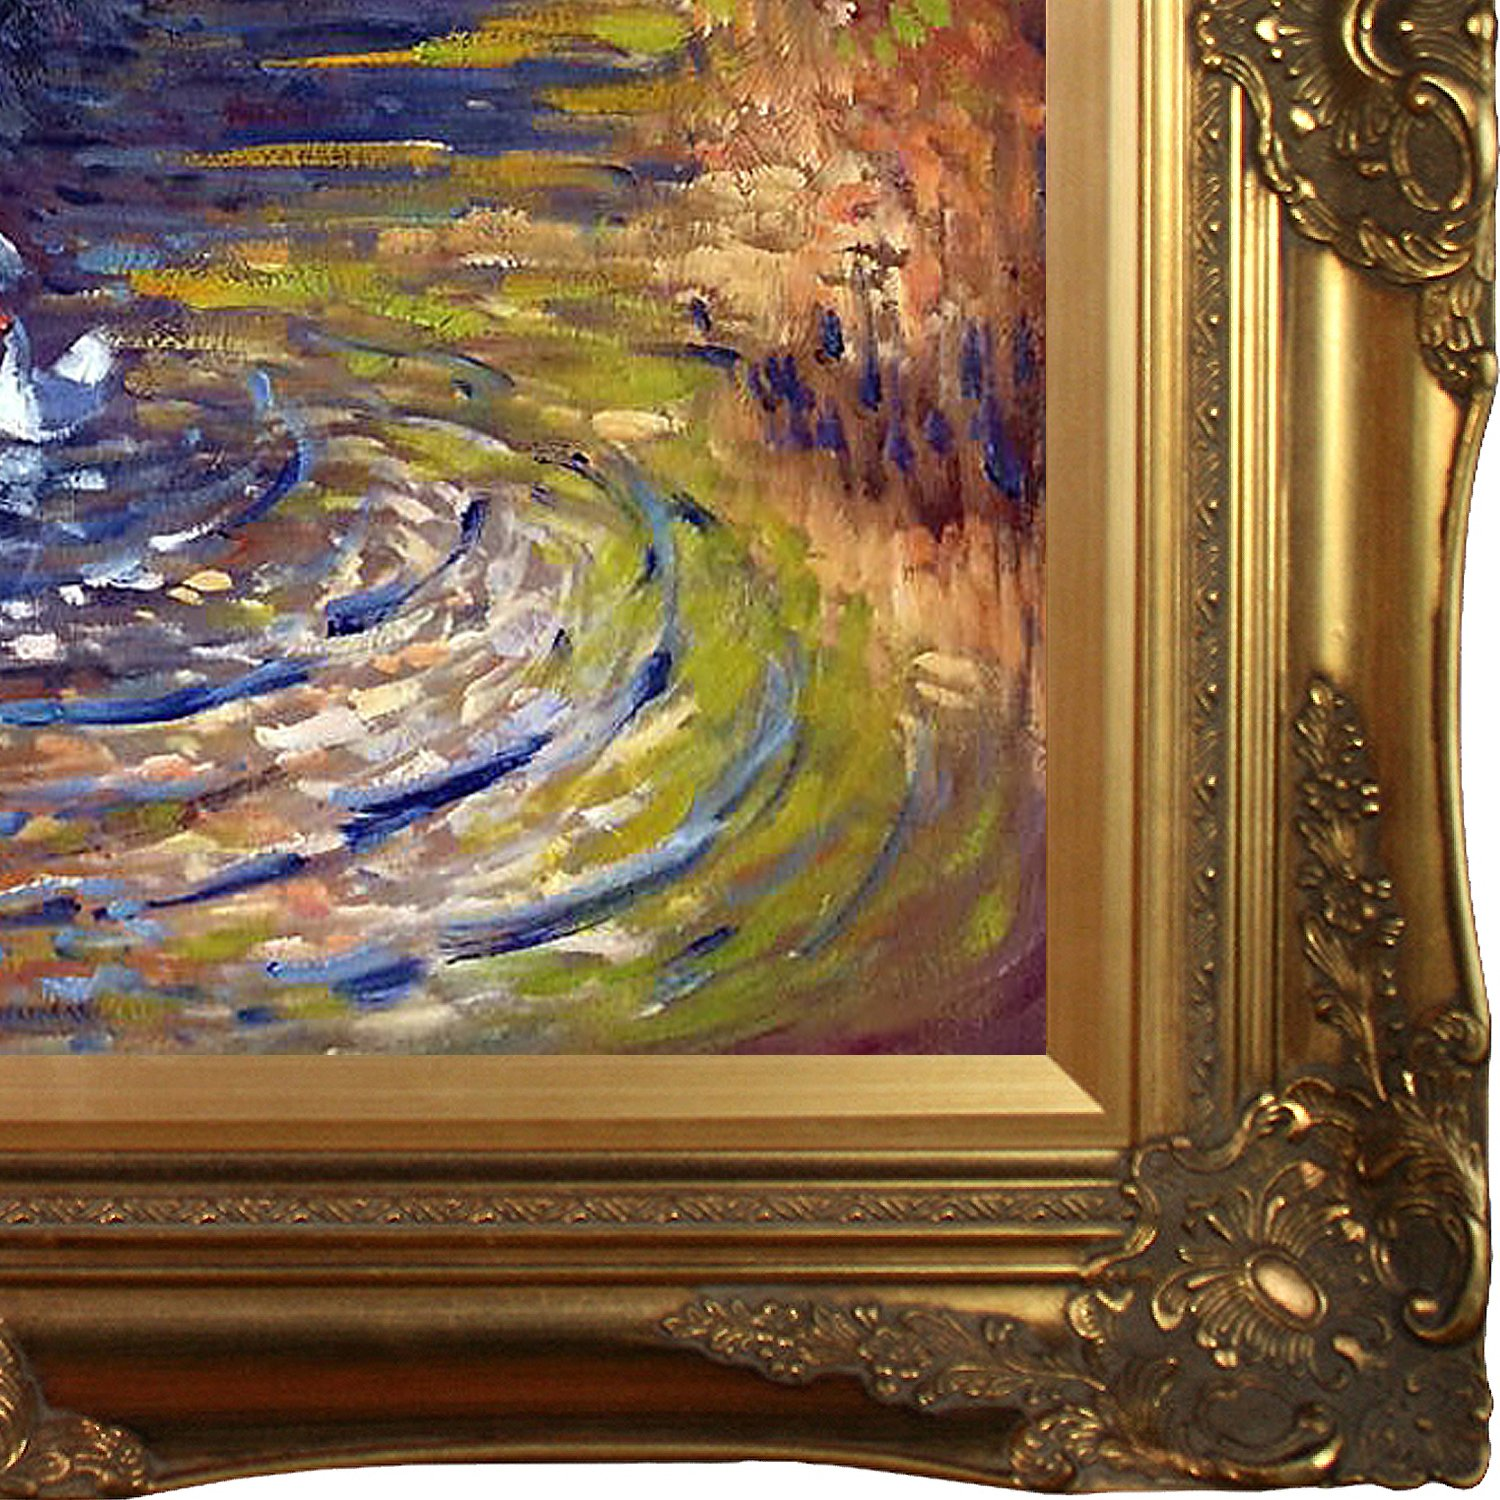 overstockArt Geese in The Creek by Monet with Victorian Gold Frame and Gold Finish Artwork